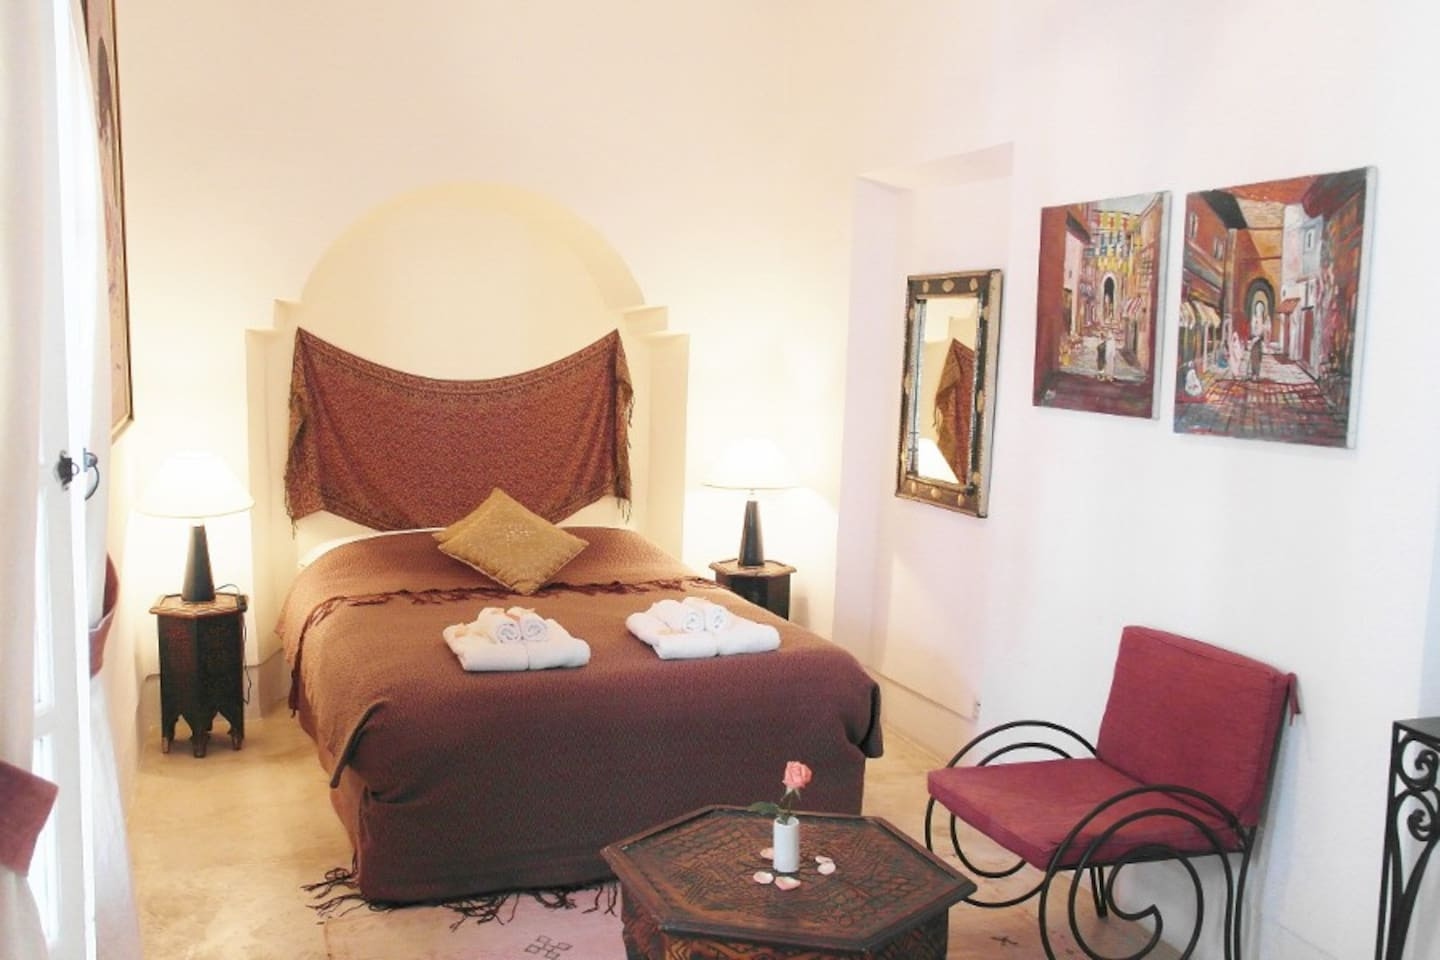 YOUR ROOM IN A RIAD - B&B + WIFI 4